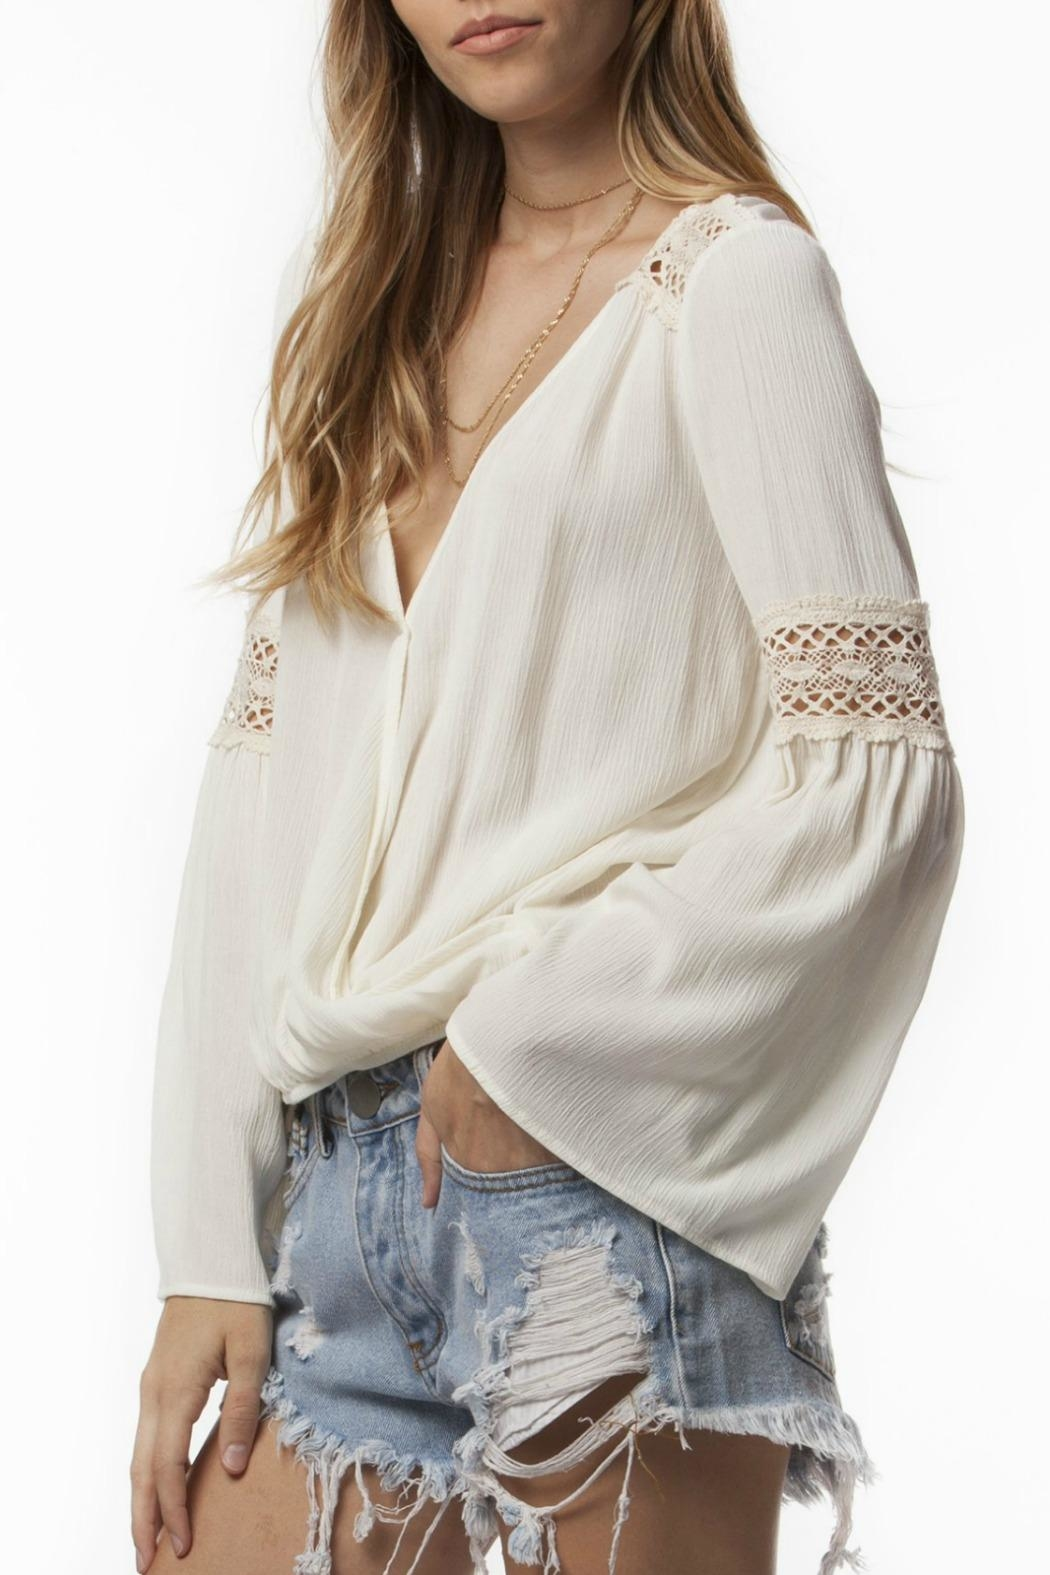 PPLA Clothing Jaclyn Top - Front Full Image